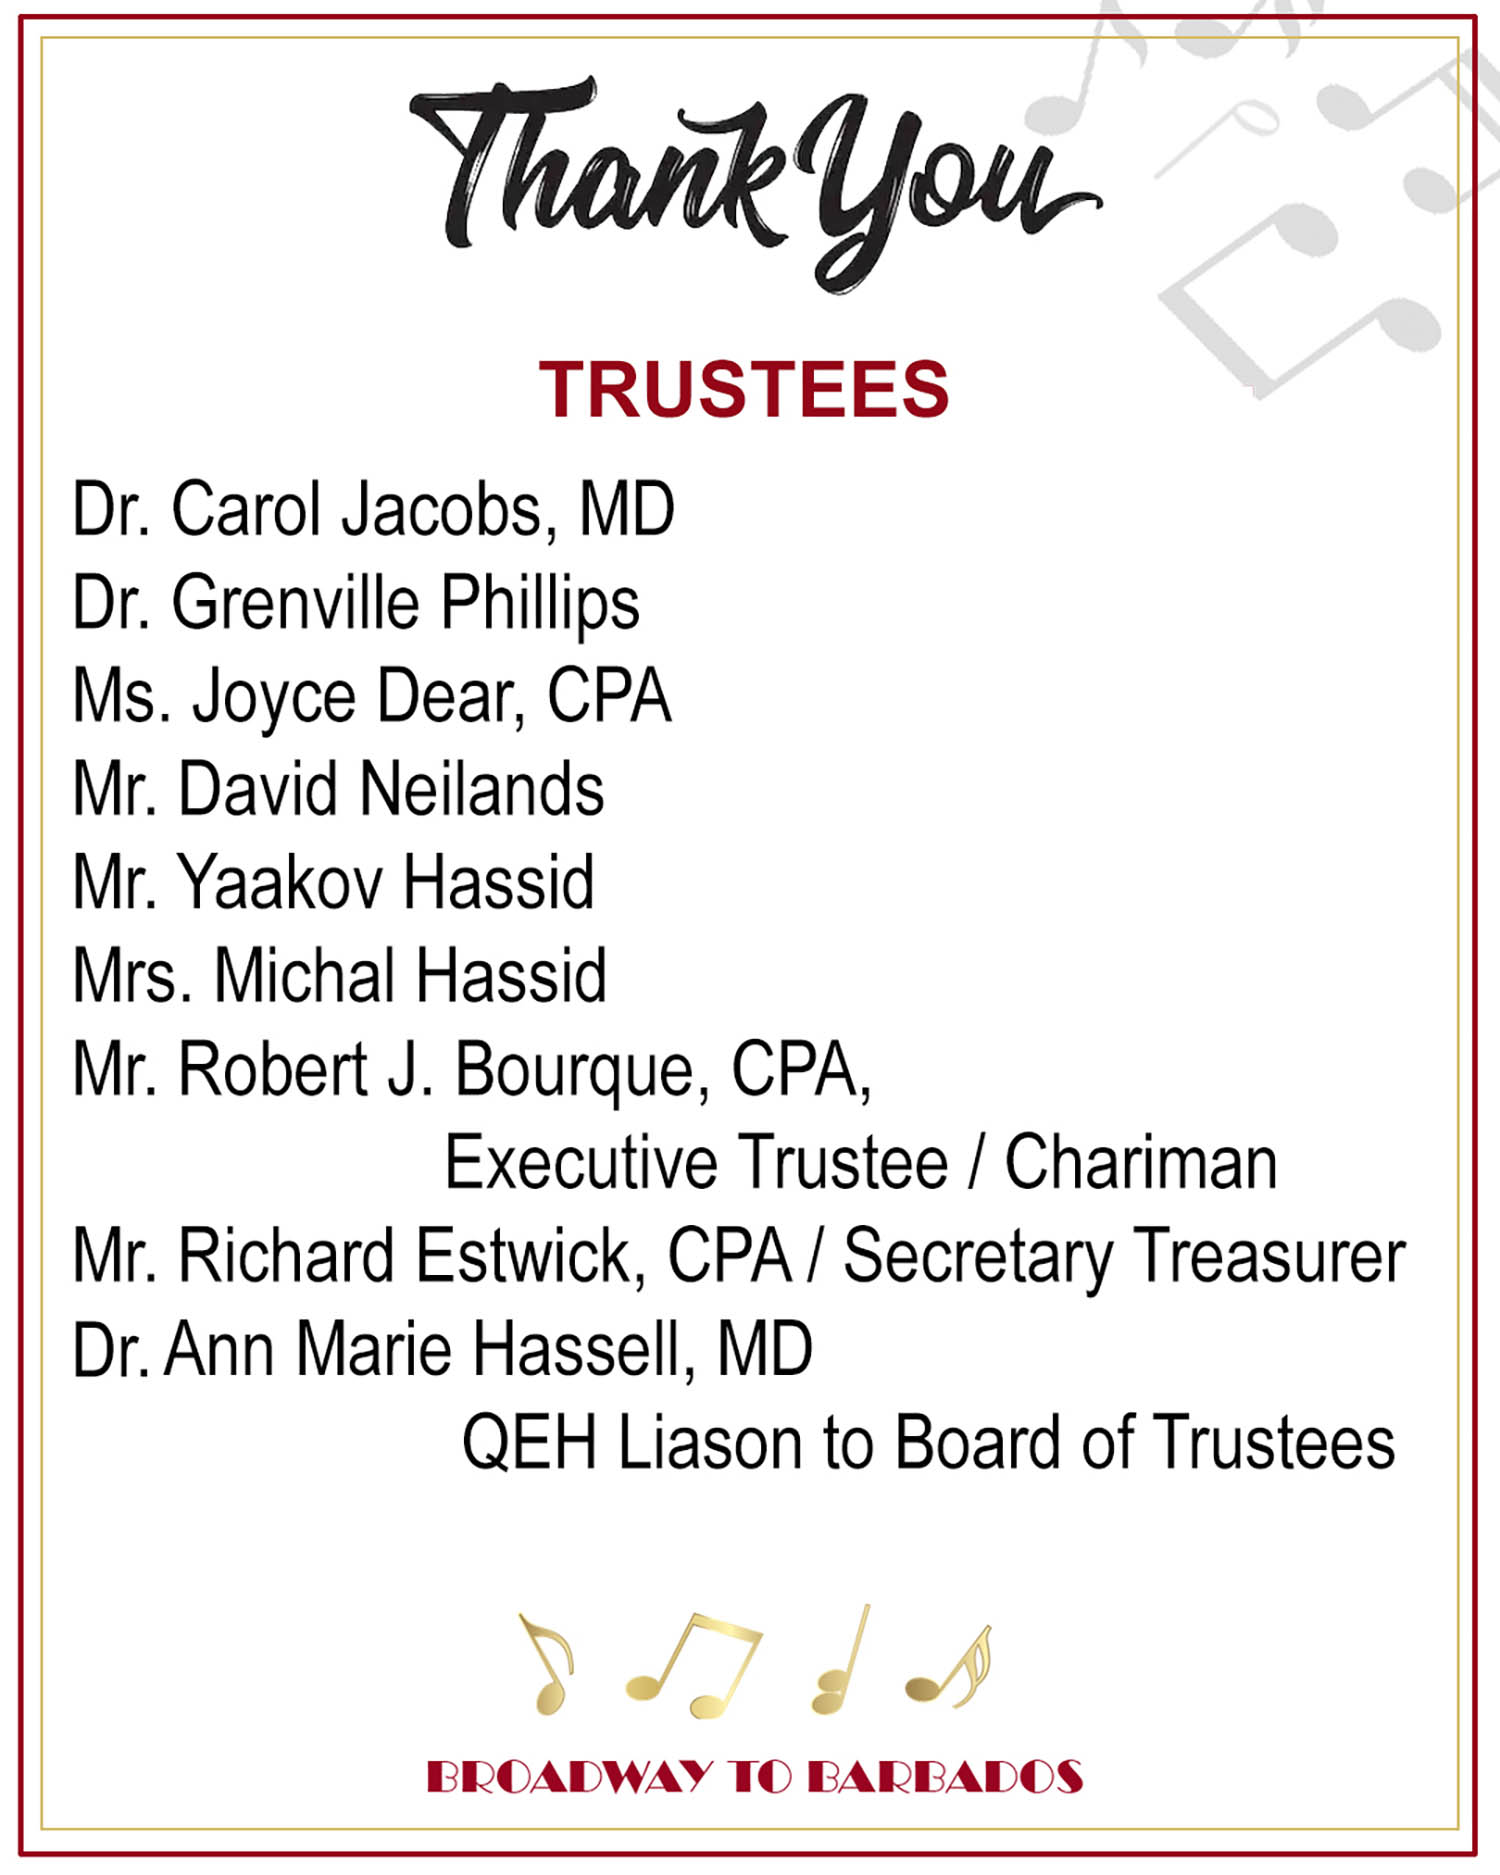 thank you trustees